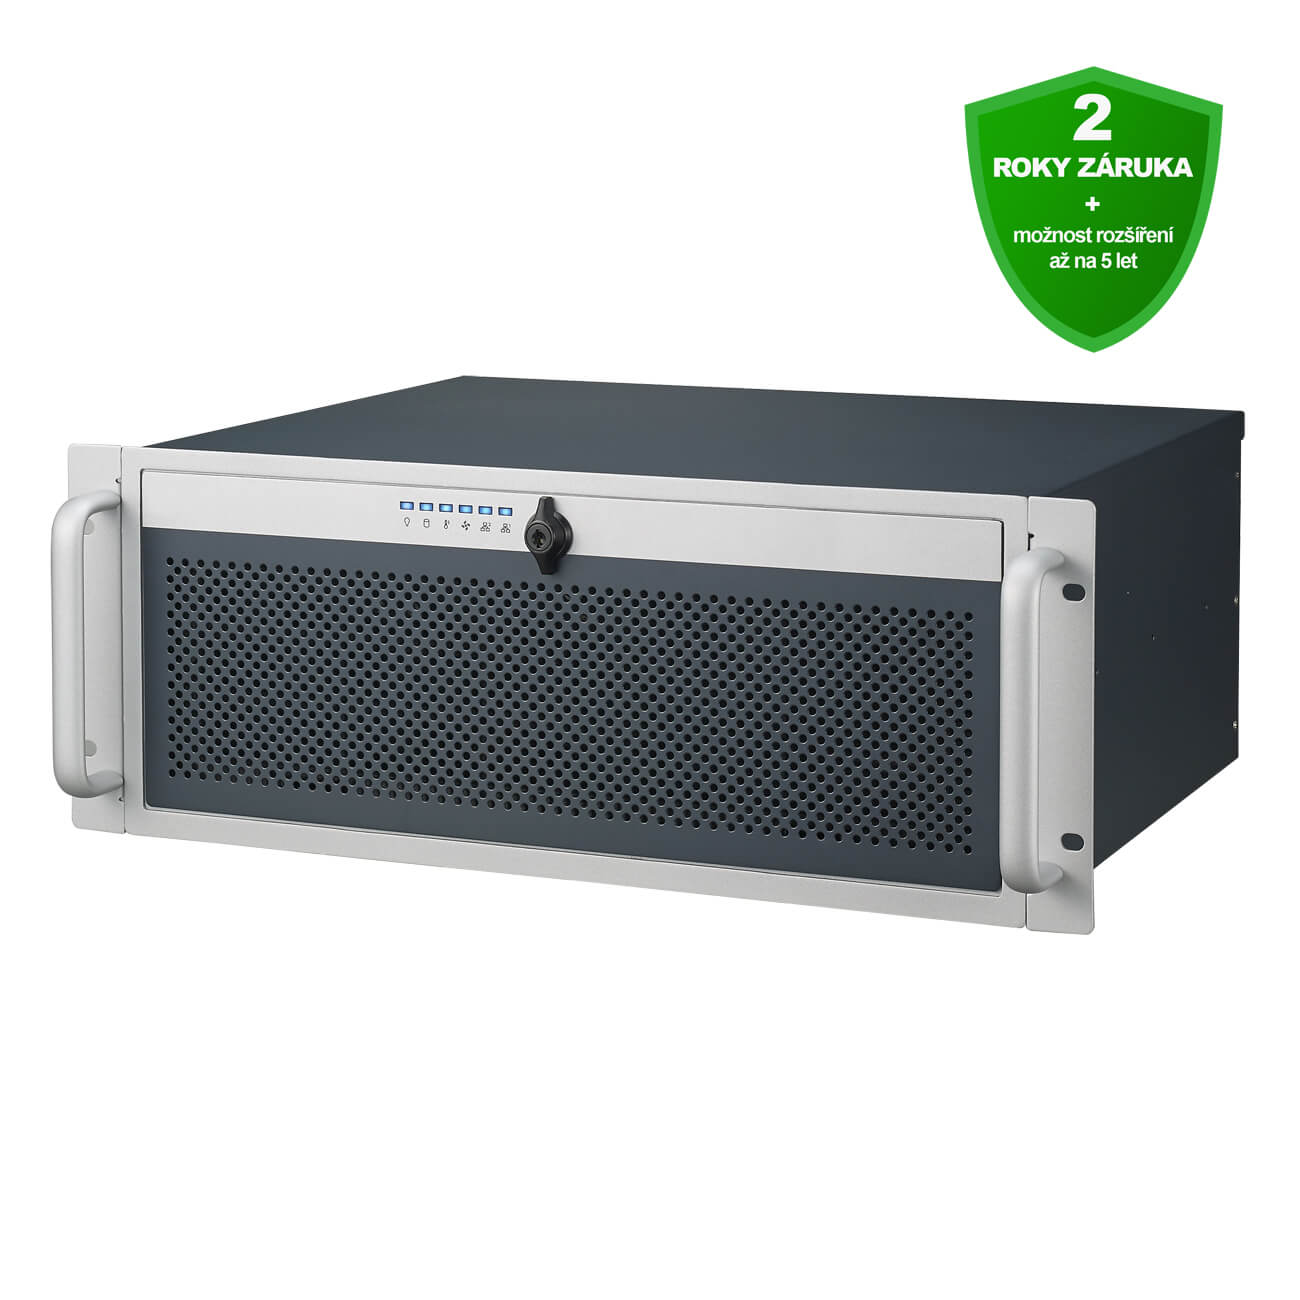 IAC RACK 4U VOLUME